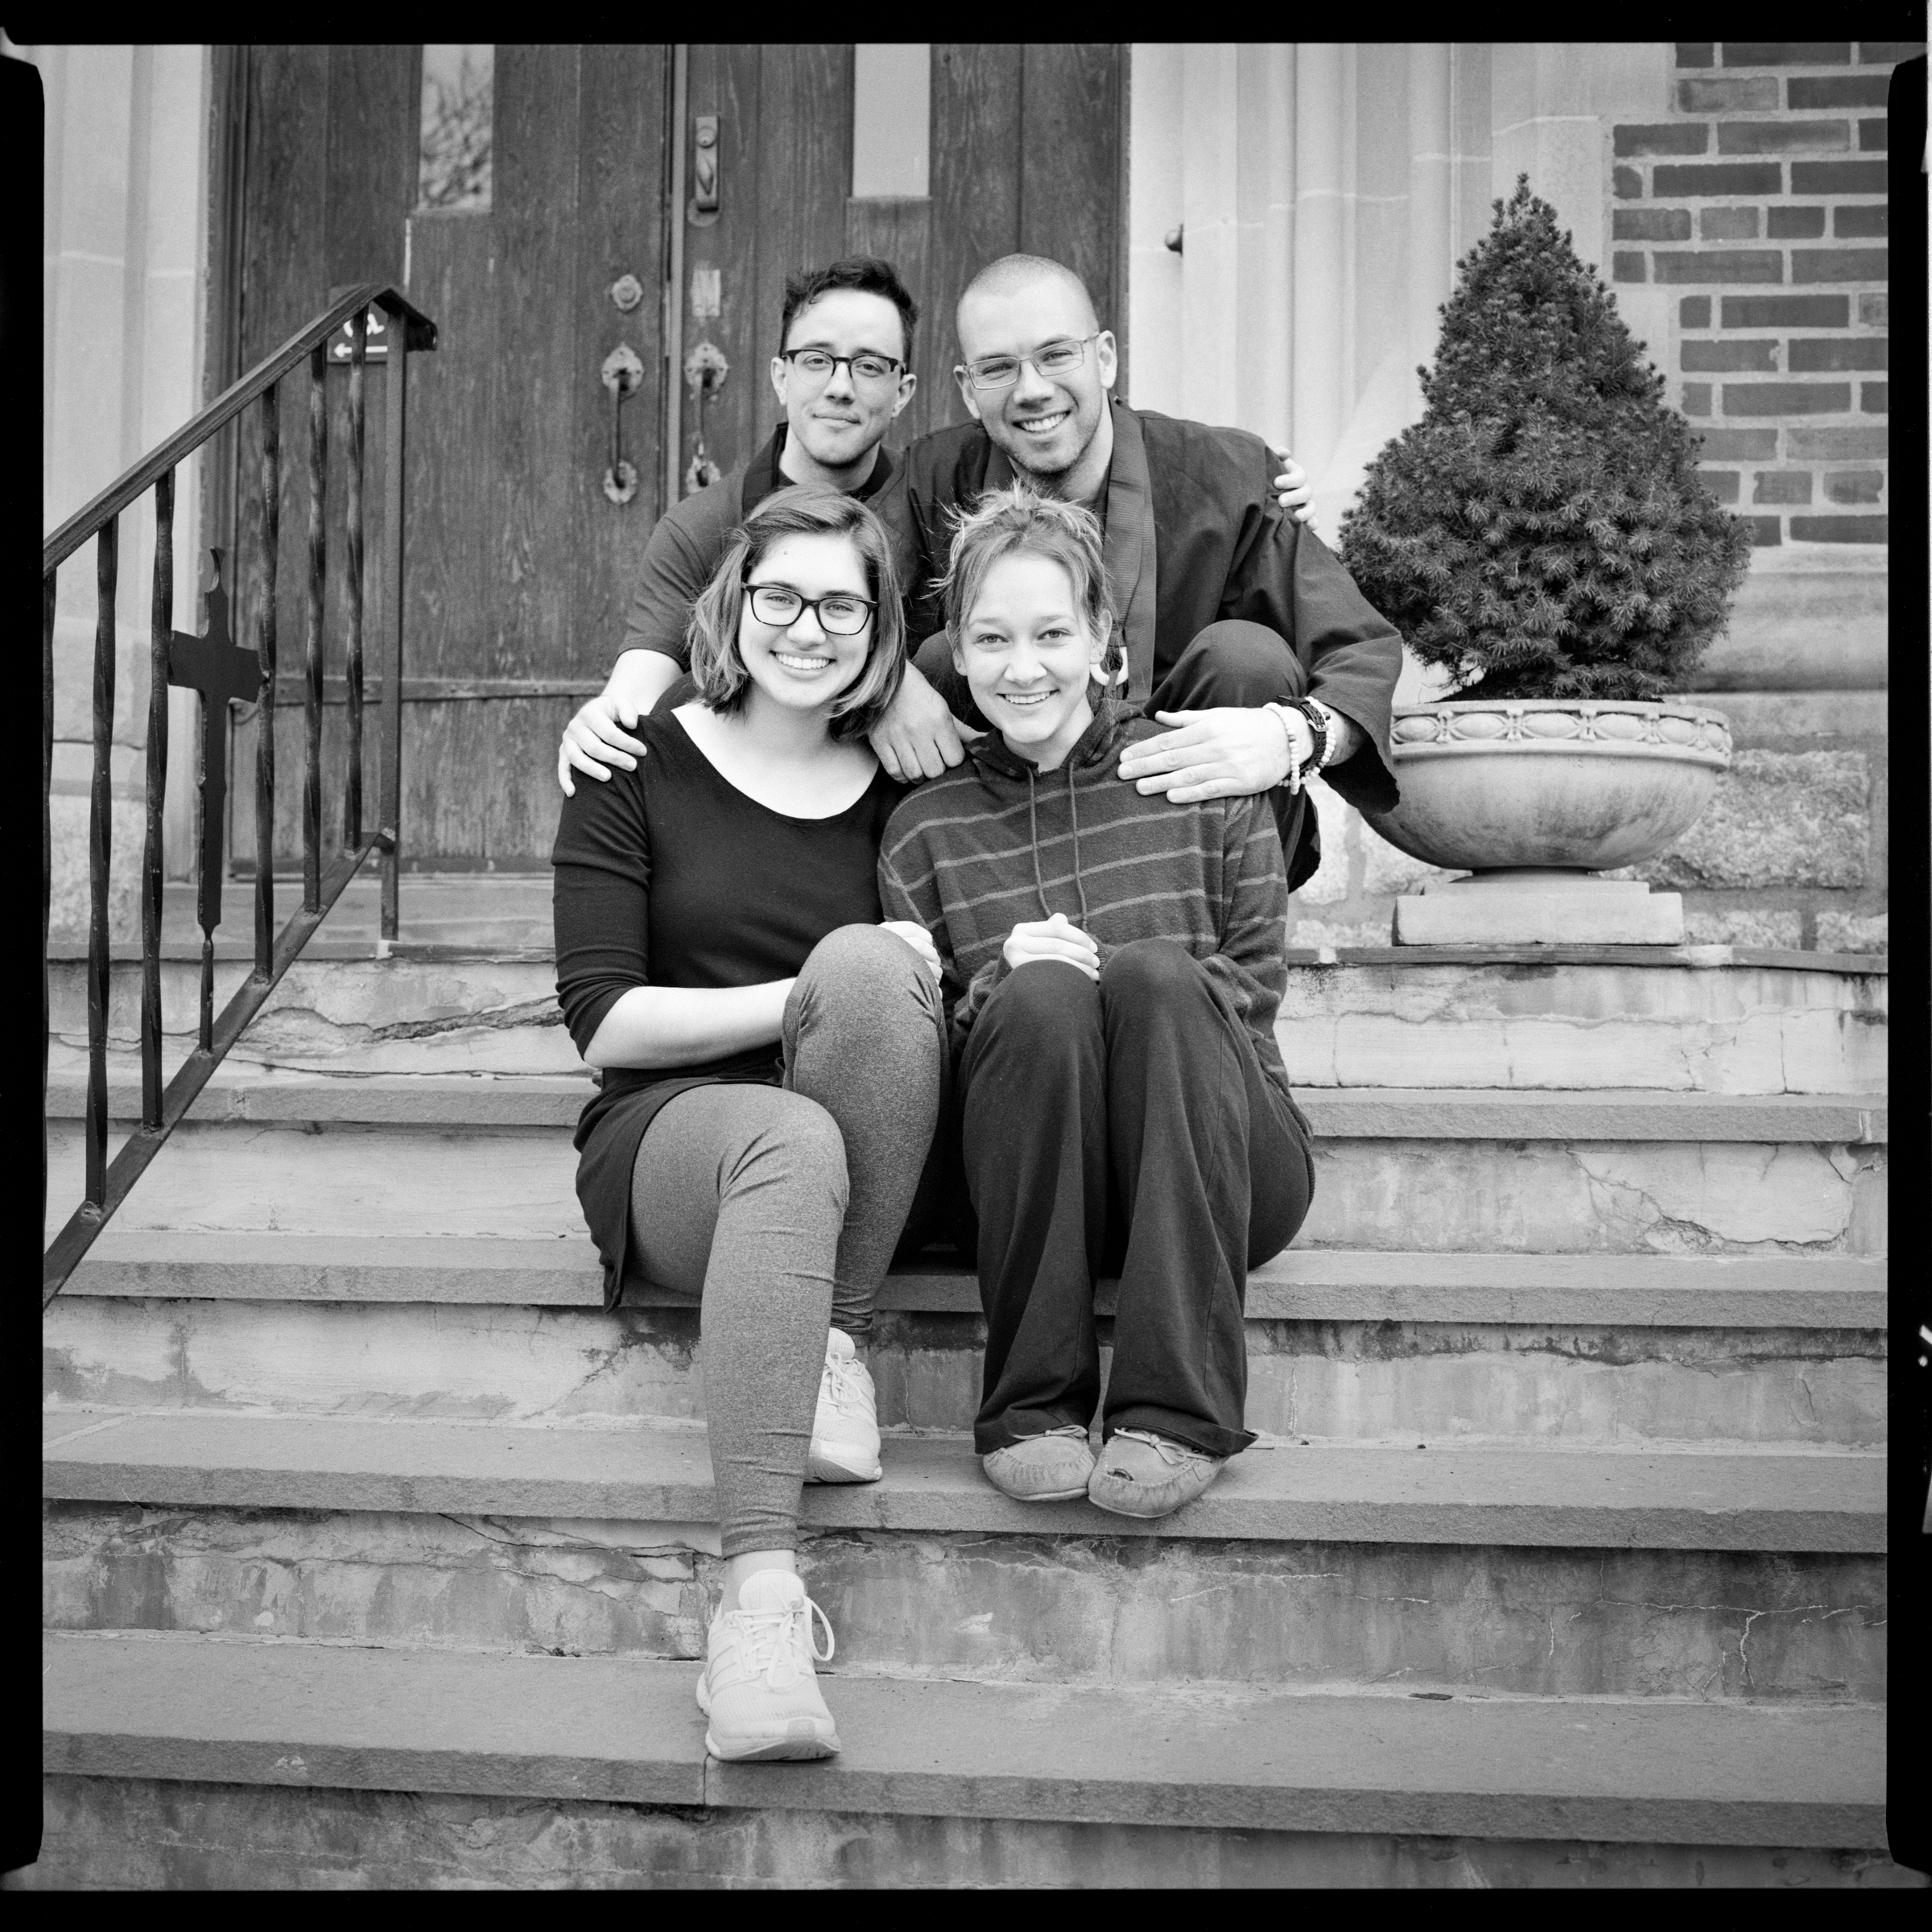 Image description: black and white photo of Giyu, Oshin, Mandy, and Erica sitting huddled together on stone steps in front of an old building. They are smiling and their hands are draped on each other.